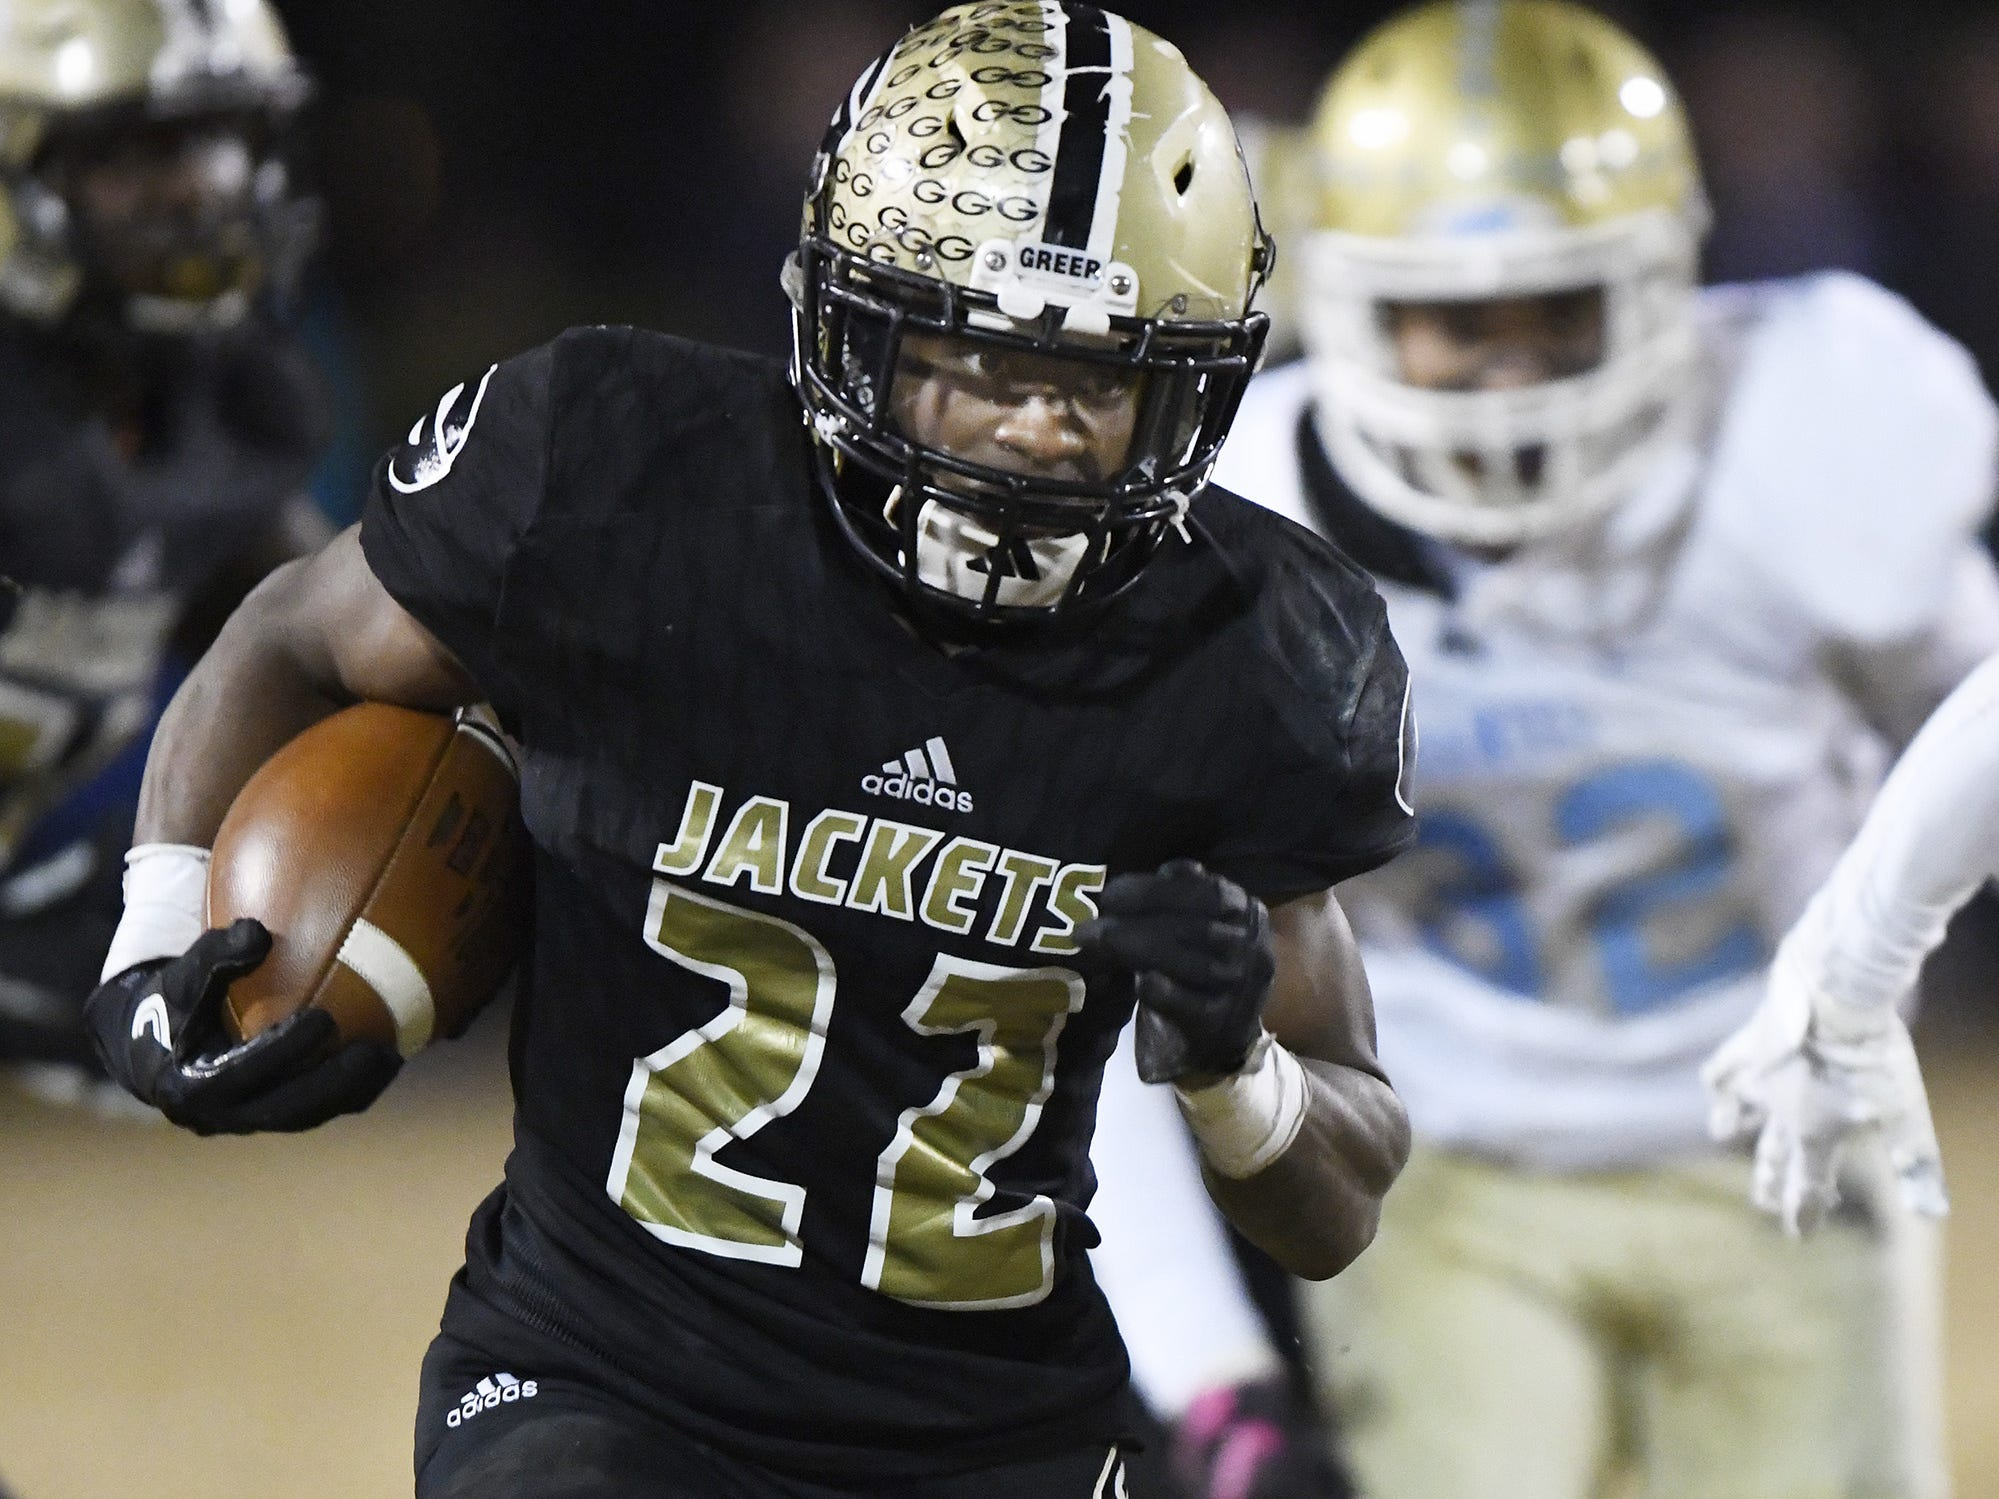 Greer's Dre Williams (22) takes off on one of his three touchdown runs against Daniel in the Class AAAA Upper State final Friday night.